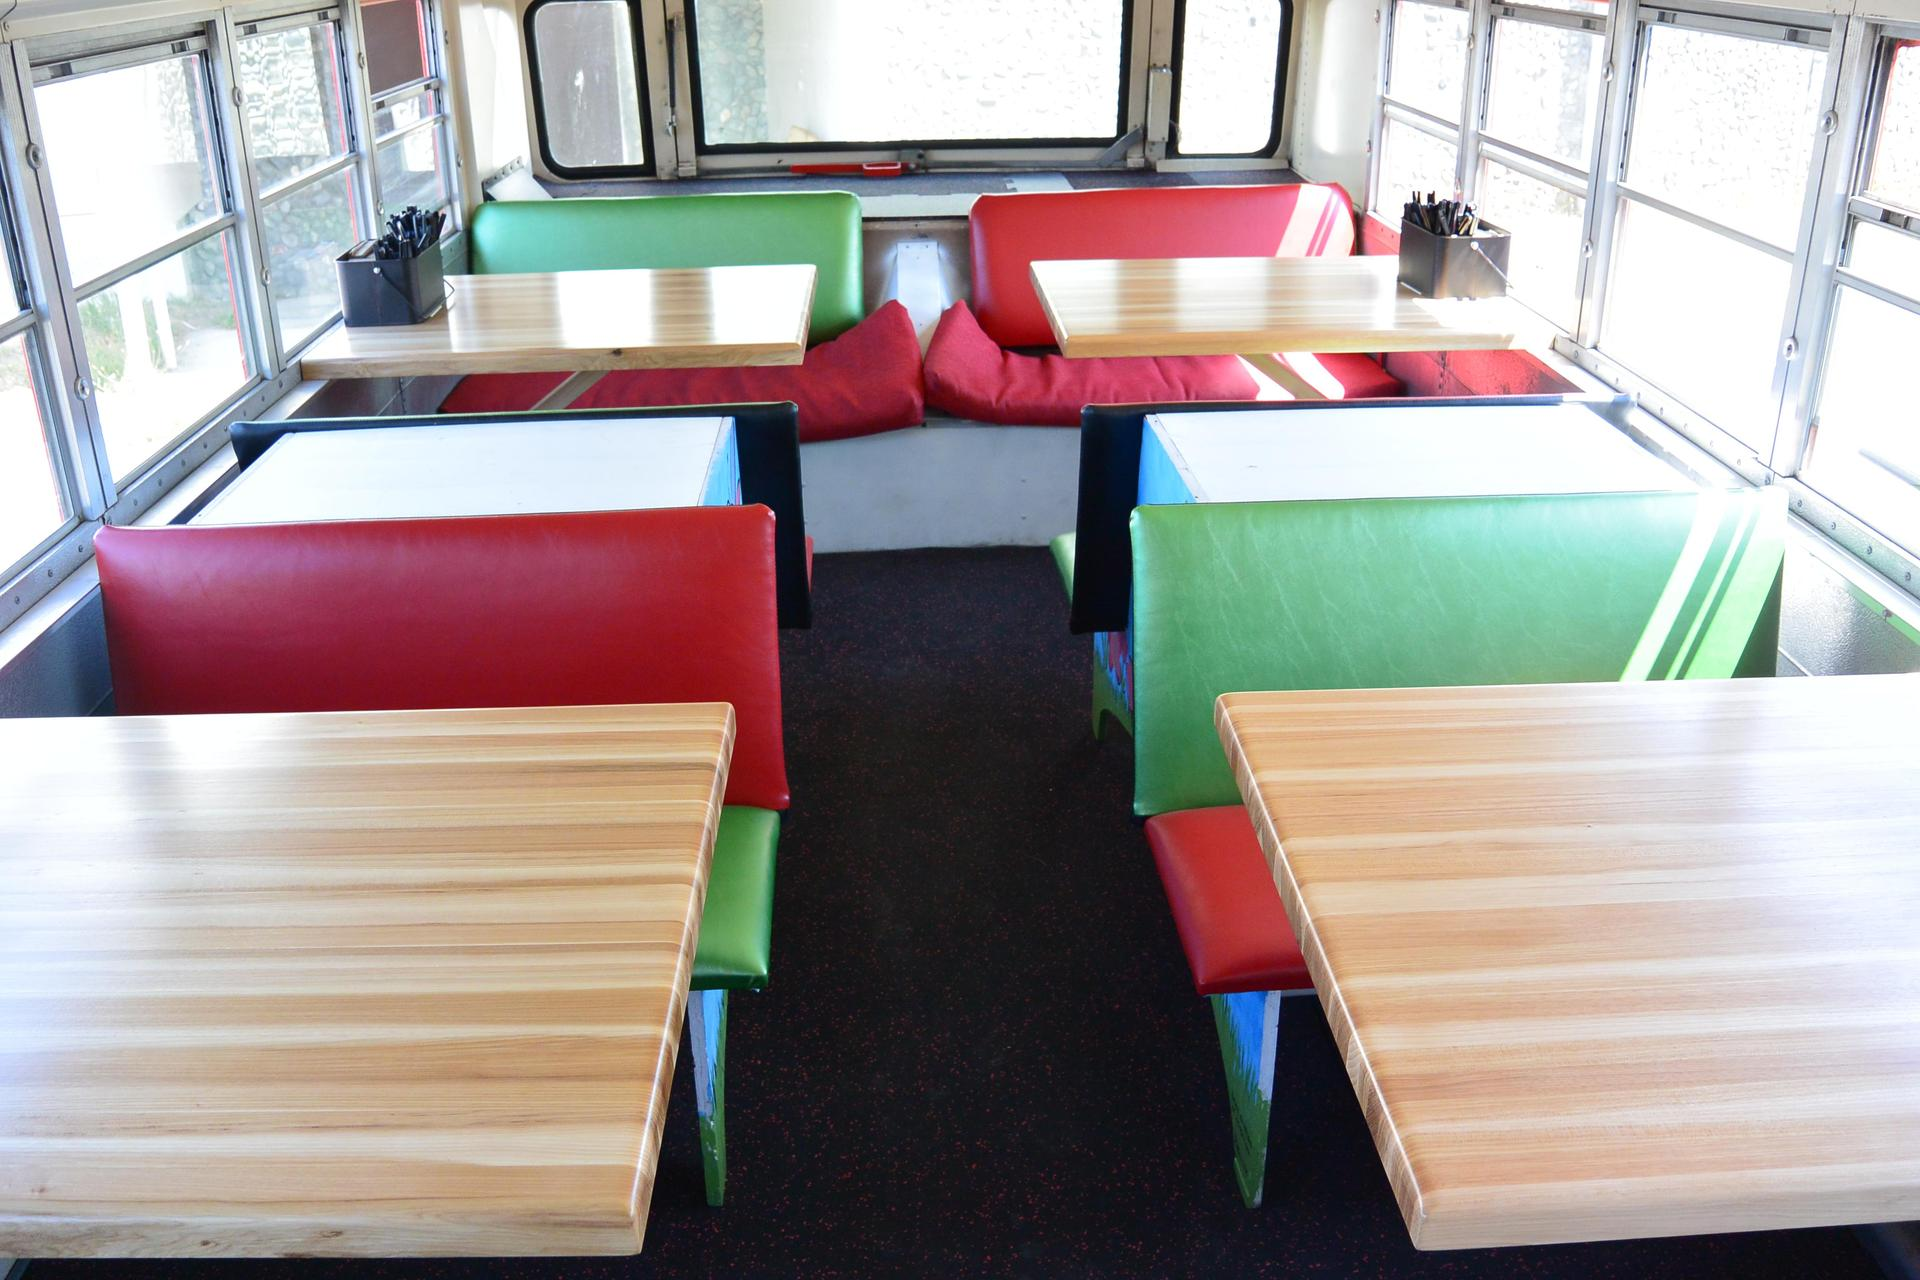 red and green seats